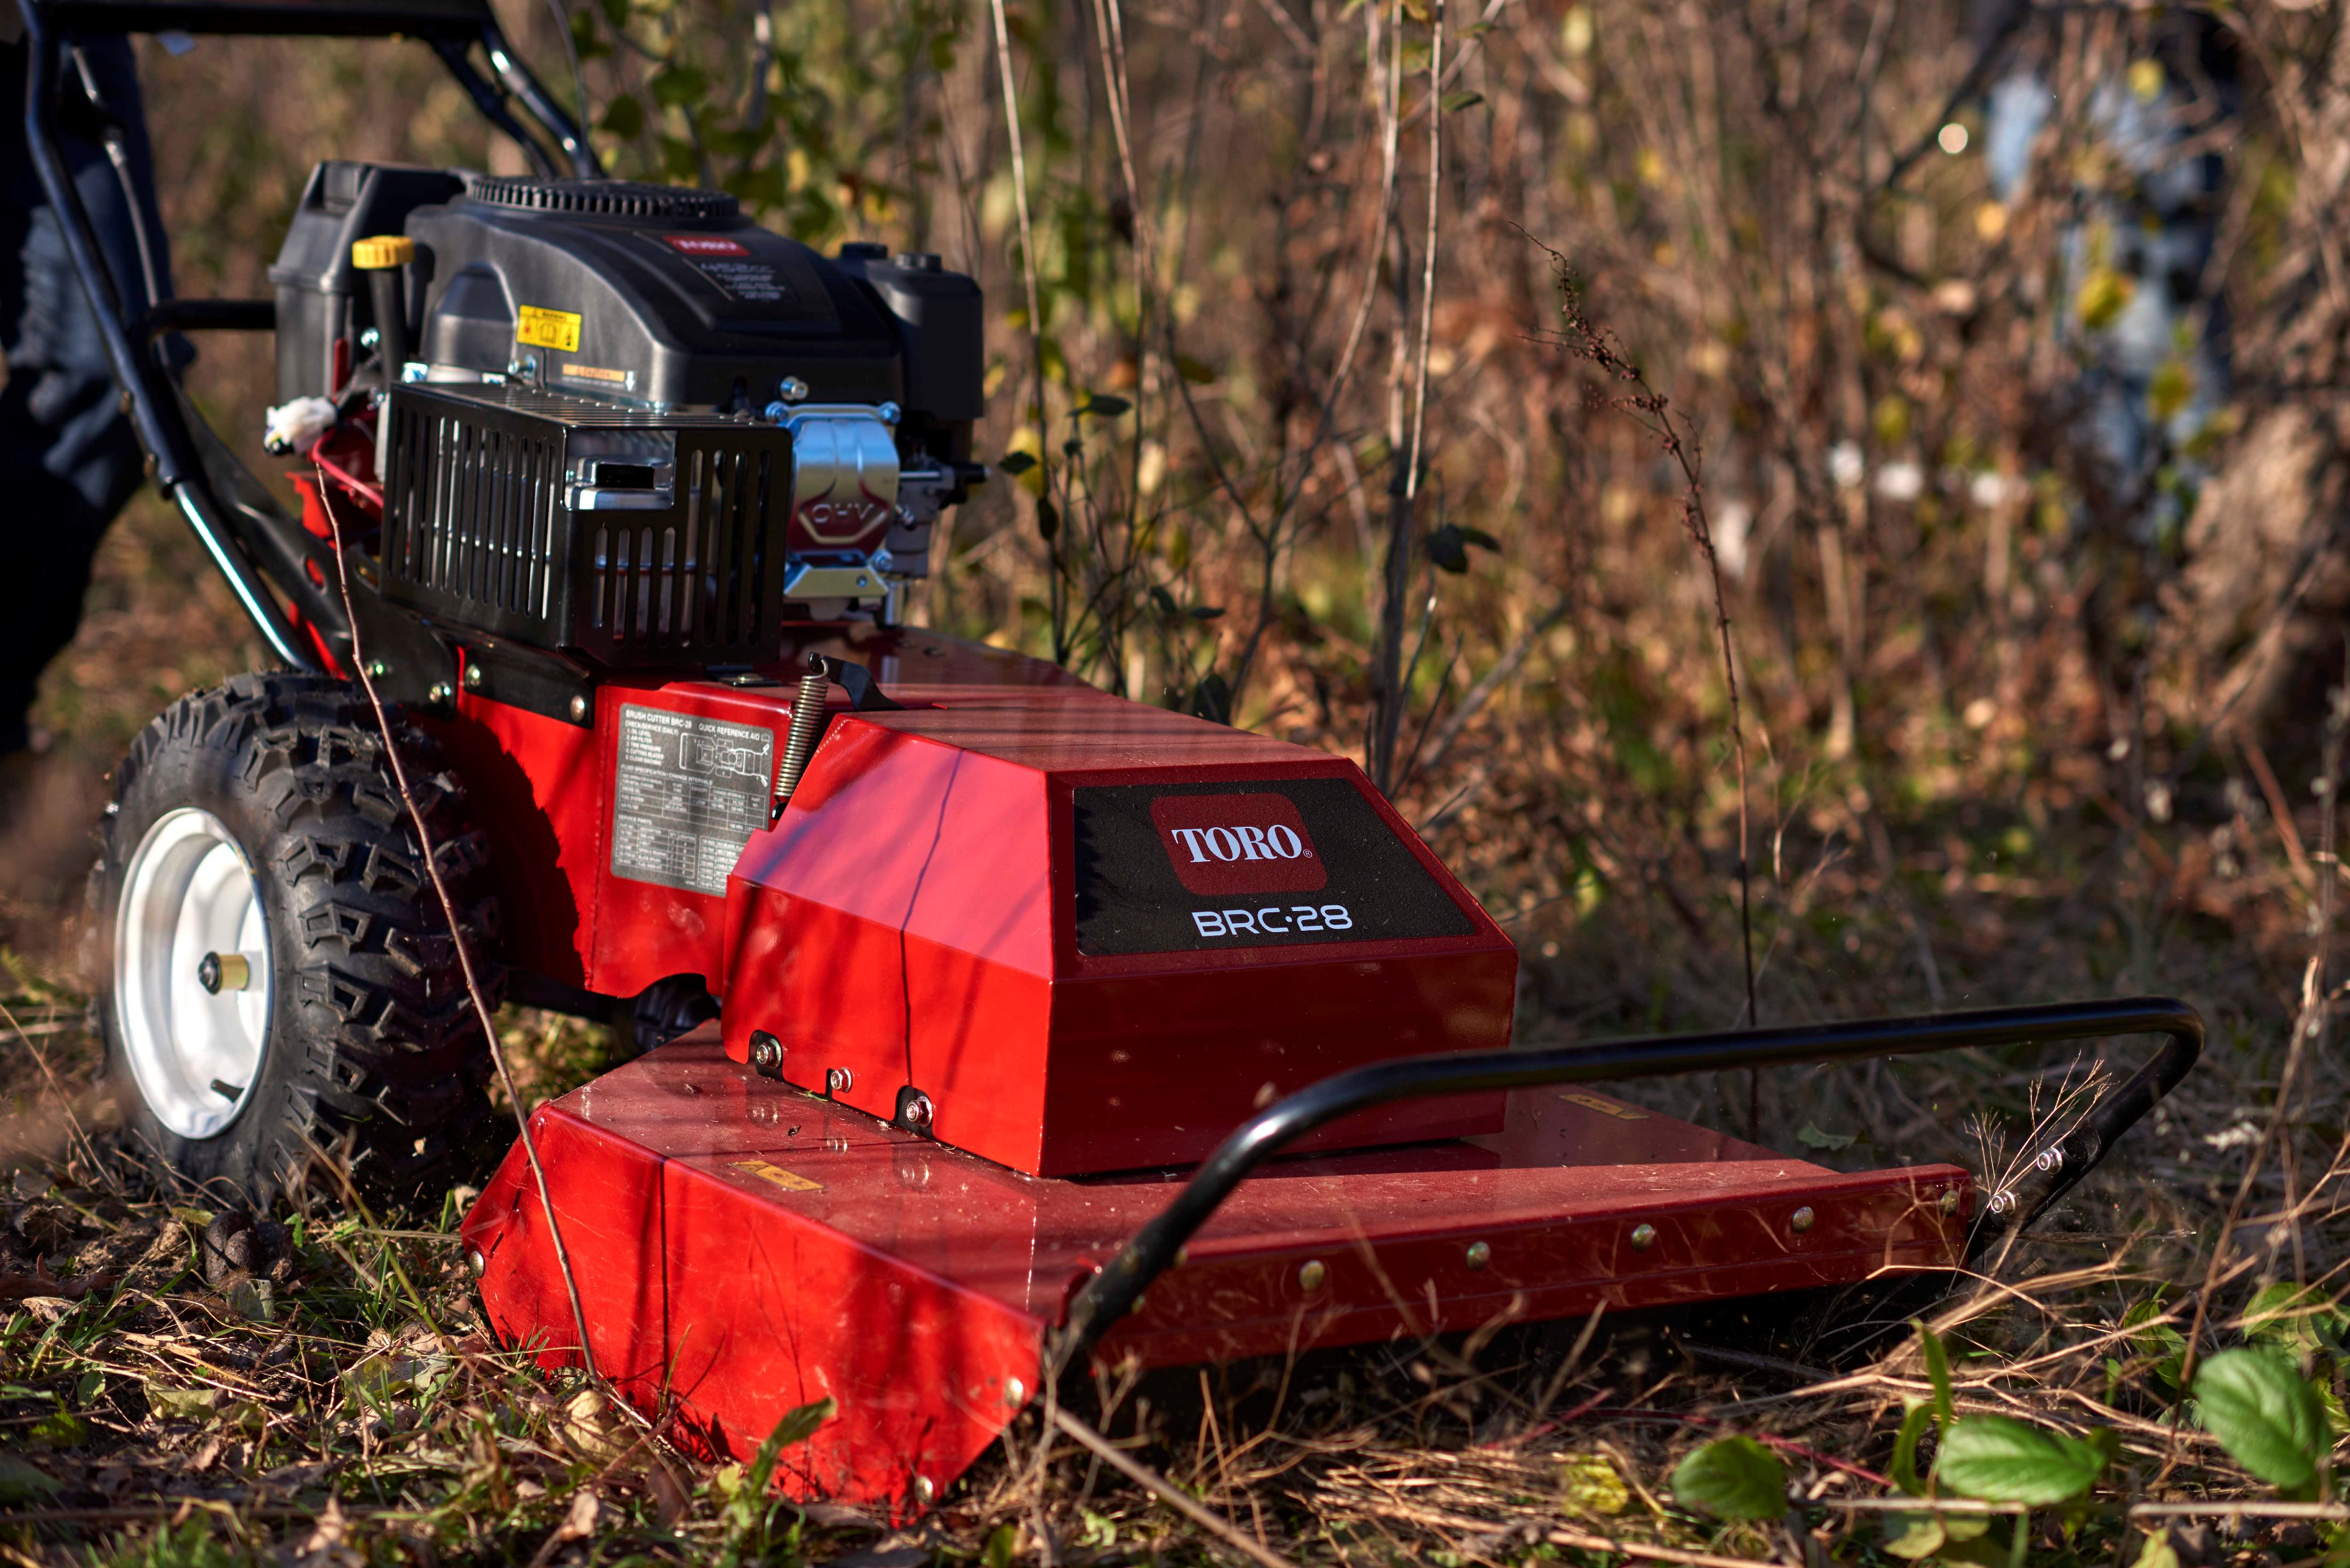 Cut heavy vegetation, tall weeds & saplings with Toro's new self-propelled Brush Cutter BRC-28